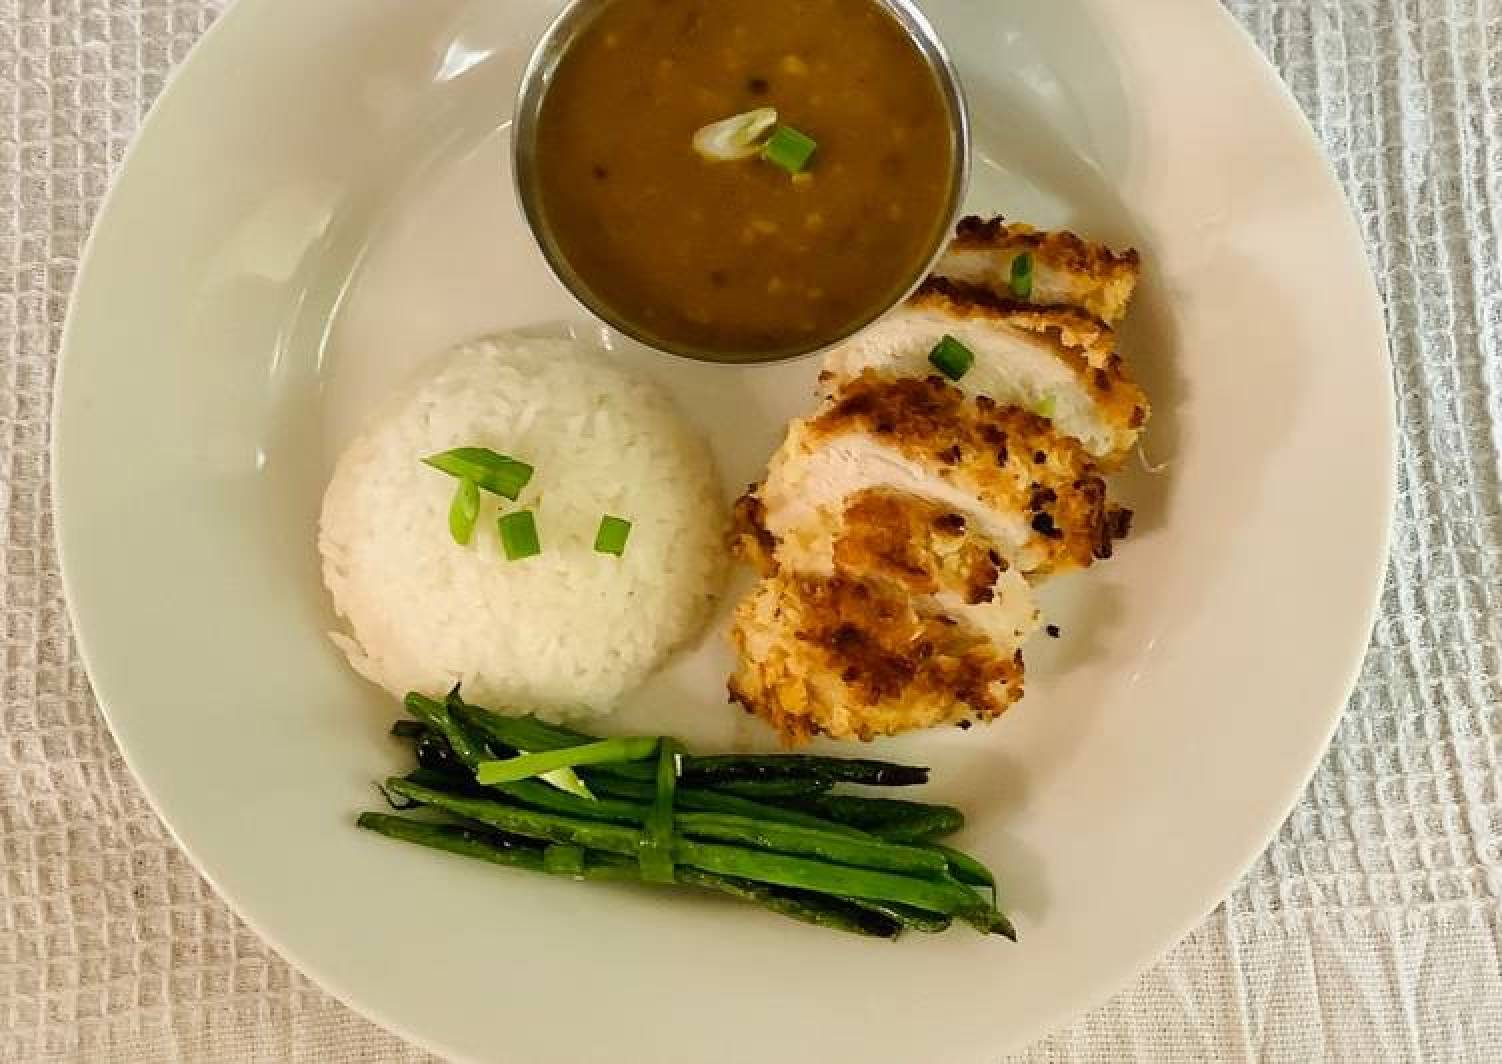 Chicken katsu served with jasmine sticky rice, curry sauce and green beans.😋